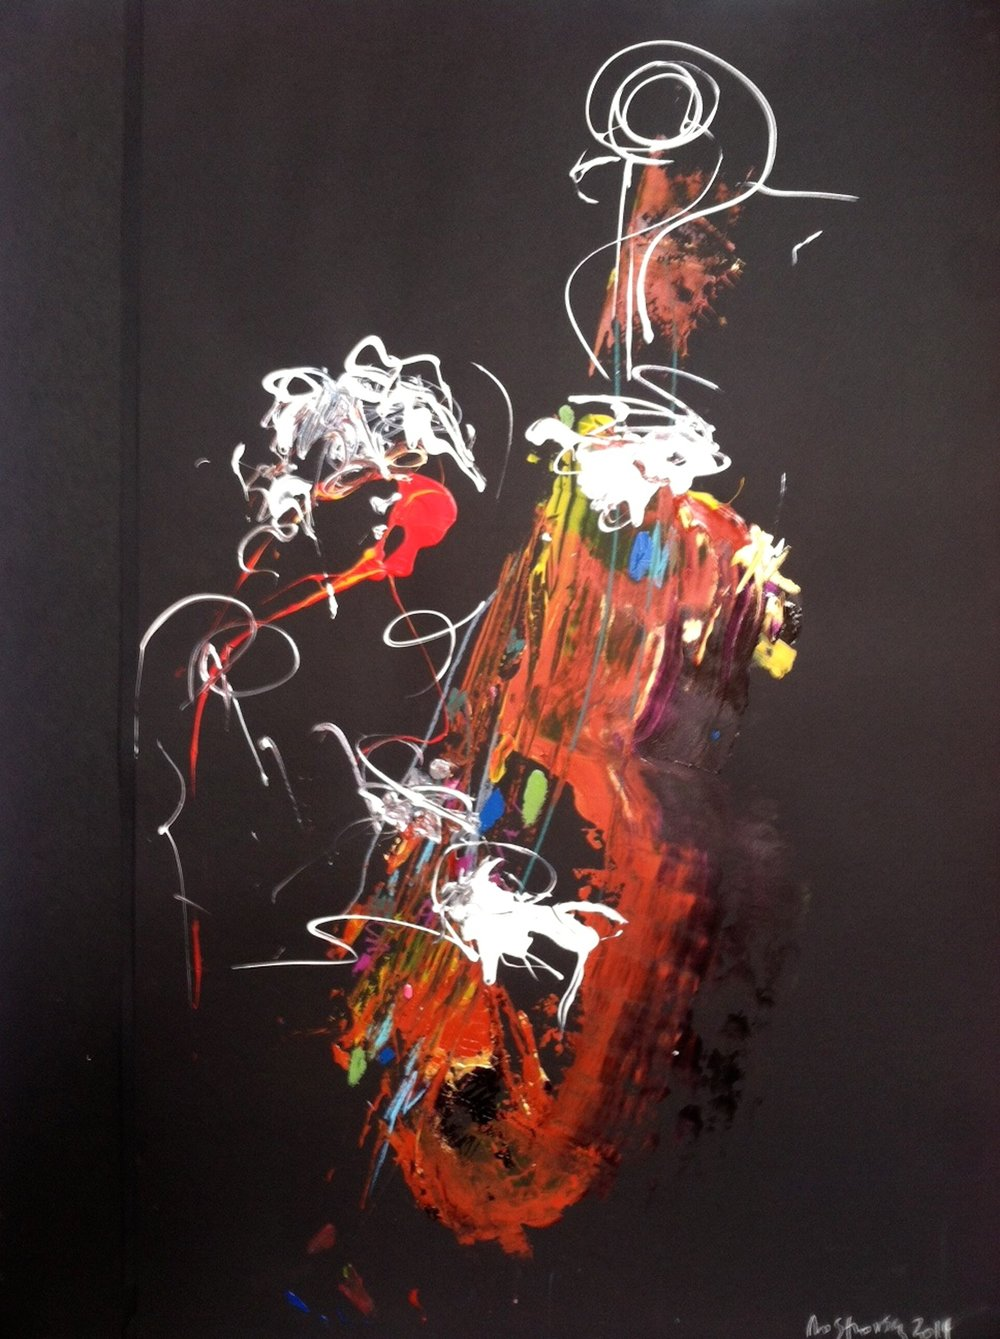 Bright, vivid abstract painting of jazz musician in multicolor.